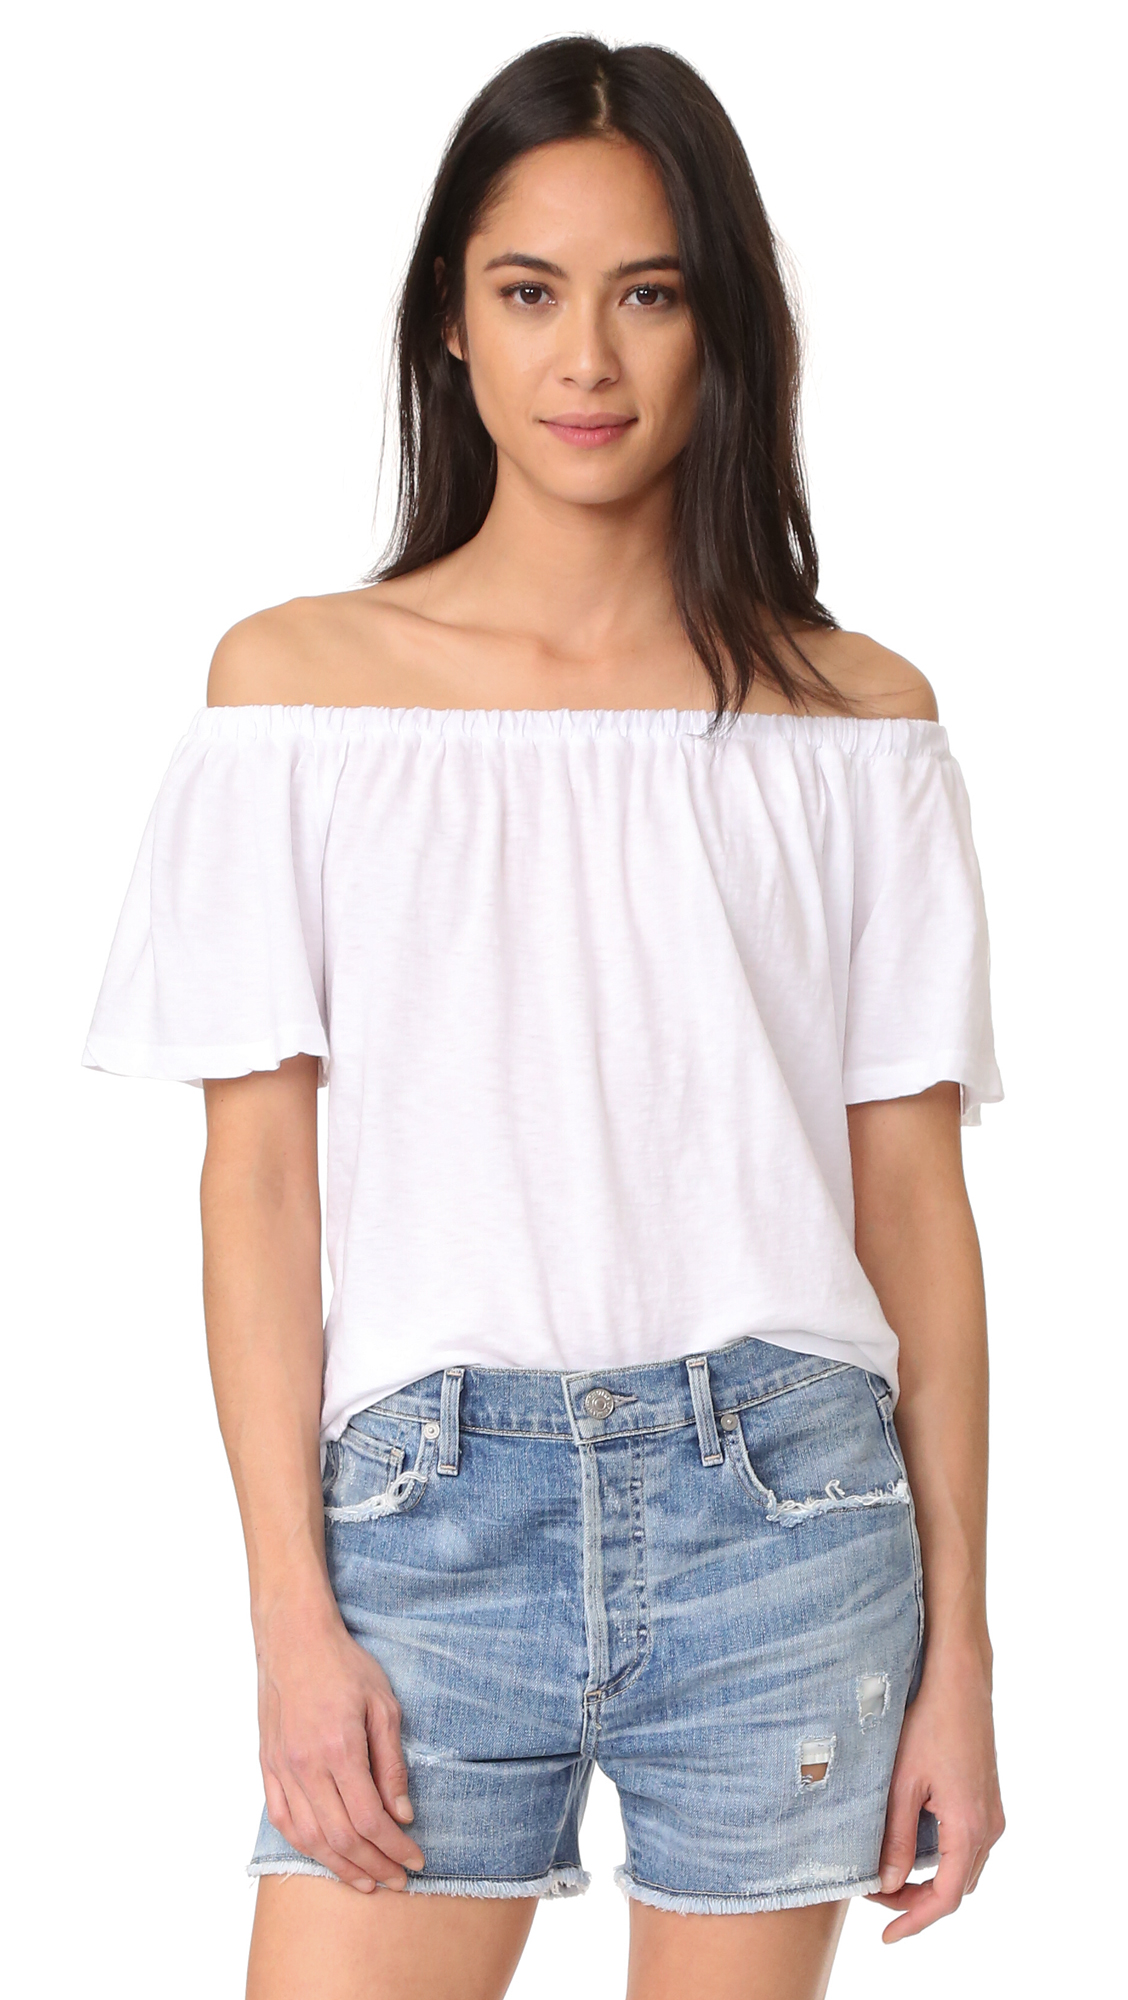 Covered elastic cinches the off shoulder neckline on this breezy SUNDRY tee. Short flutter sleeves. Fabric: Jersey. 100% cotton. Wash cold. Made in the USA. Measurements Length: 18.5in / 47cm, from center back Measurements from size 1. Available sizes: 0,1,2,3